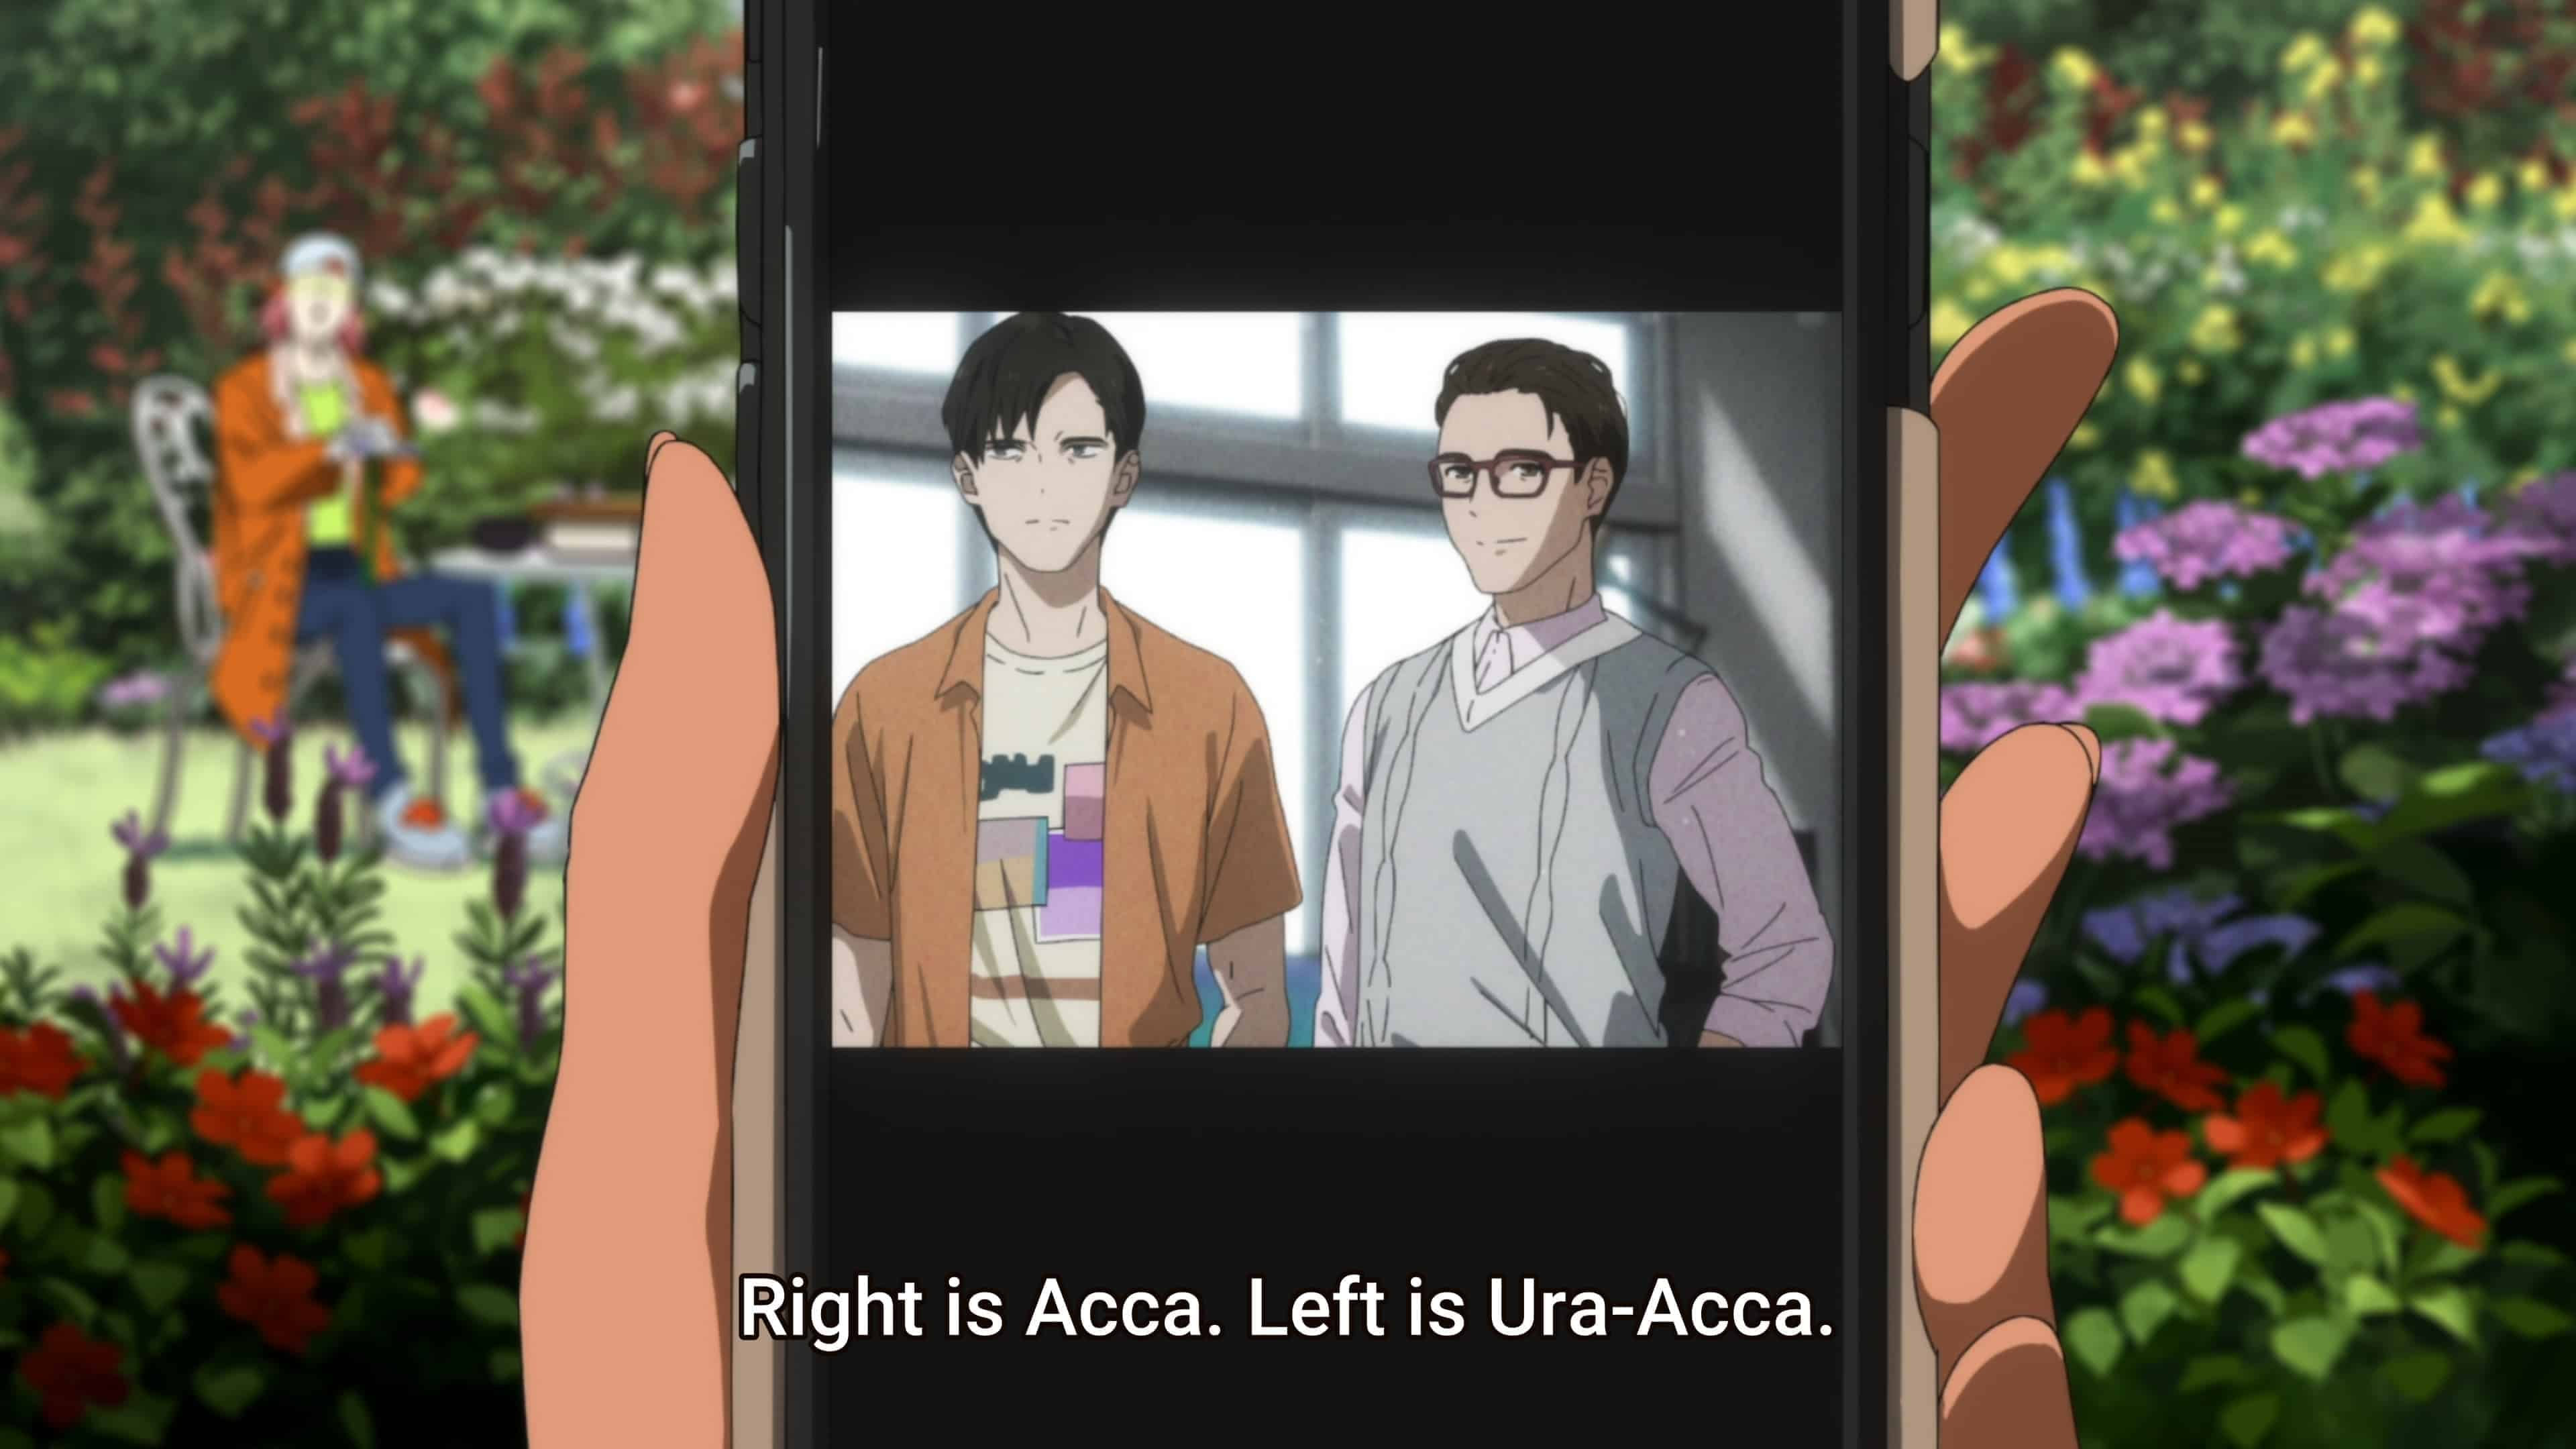 Acca and Ura-Acca when they had bodies